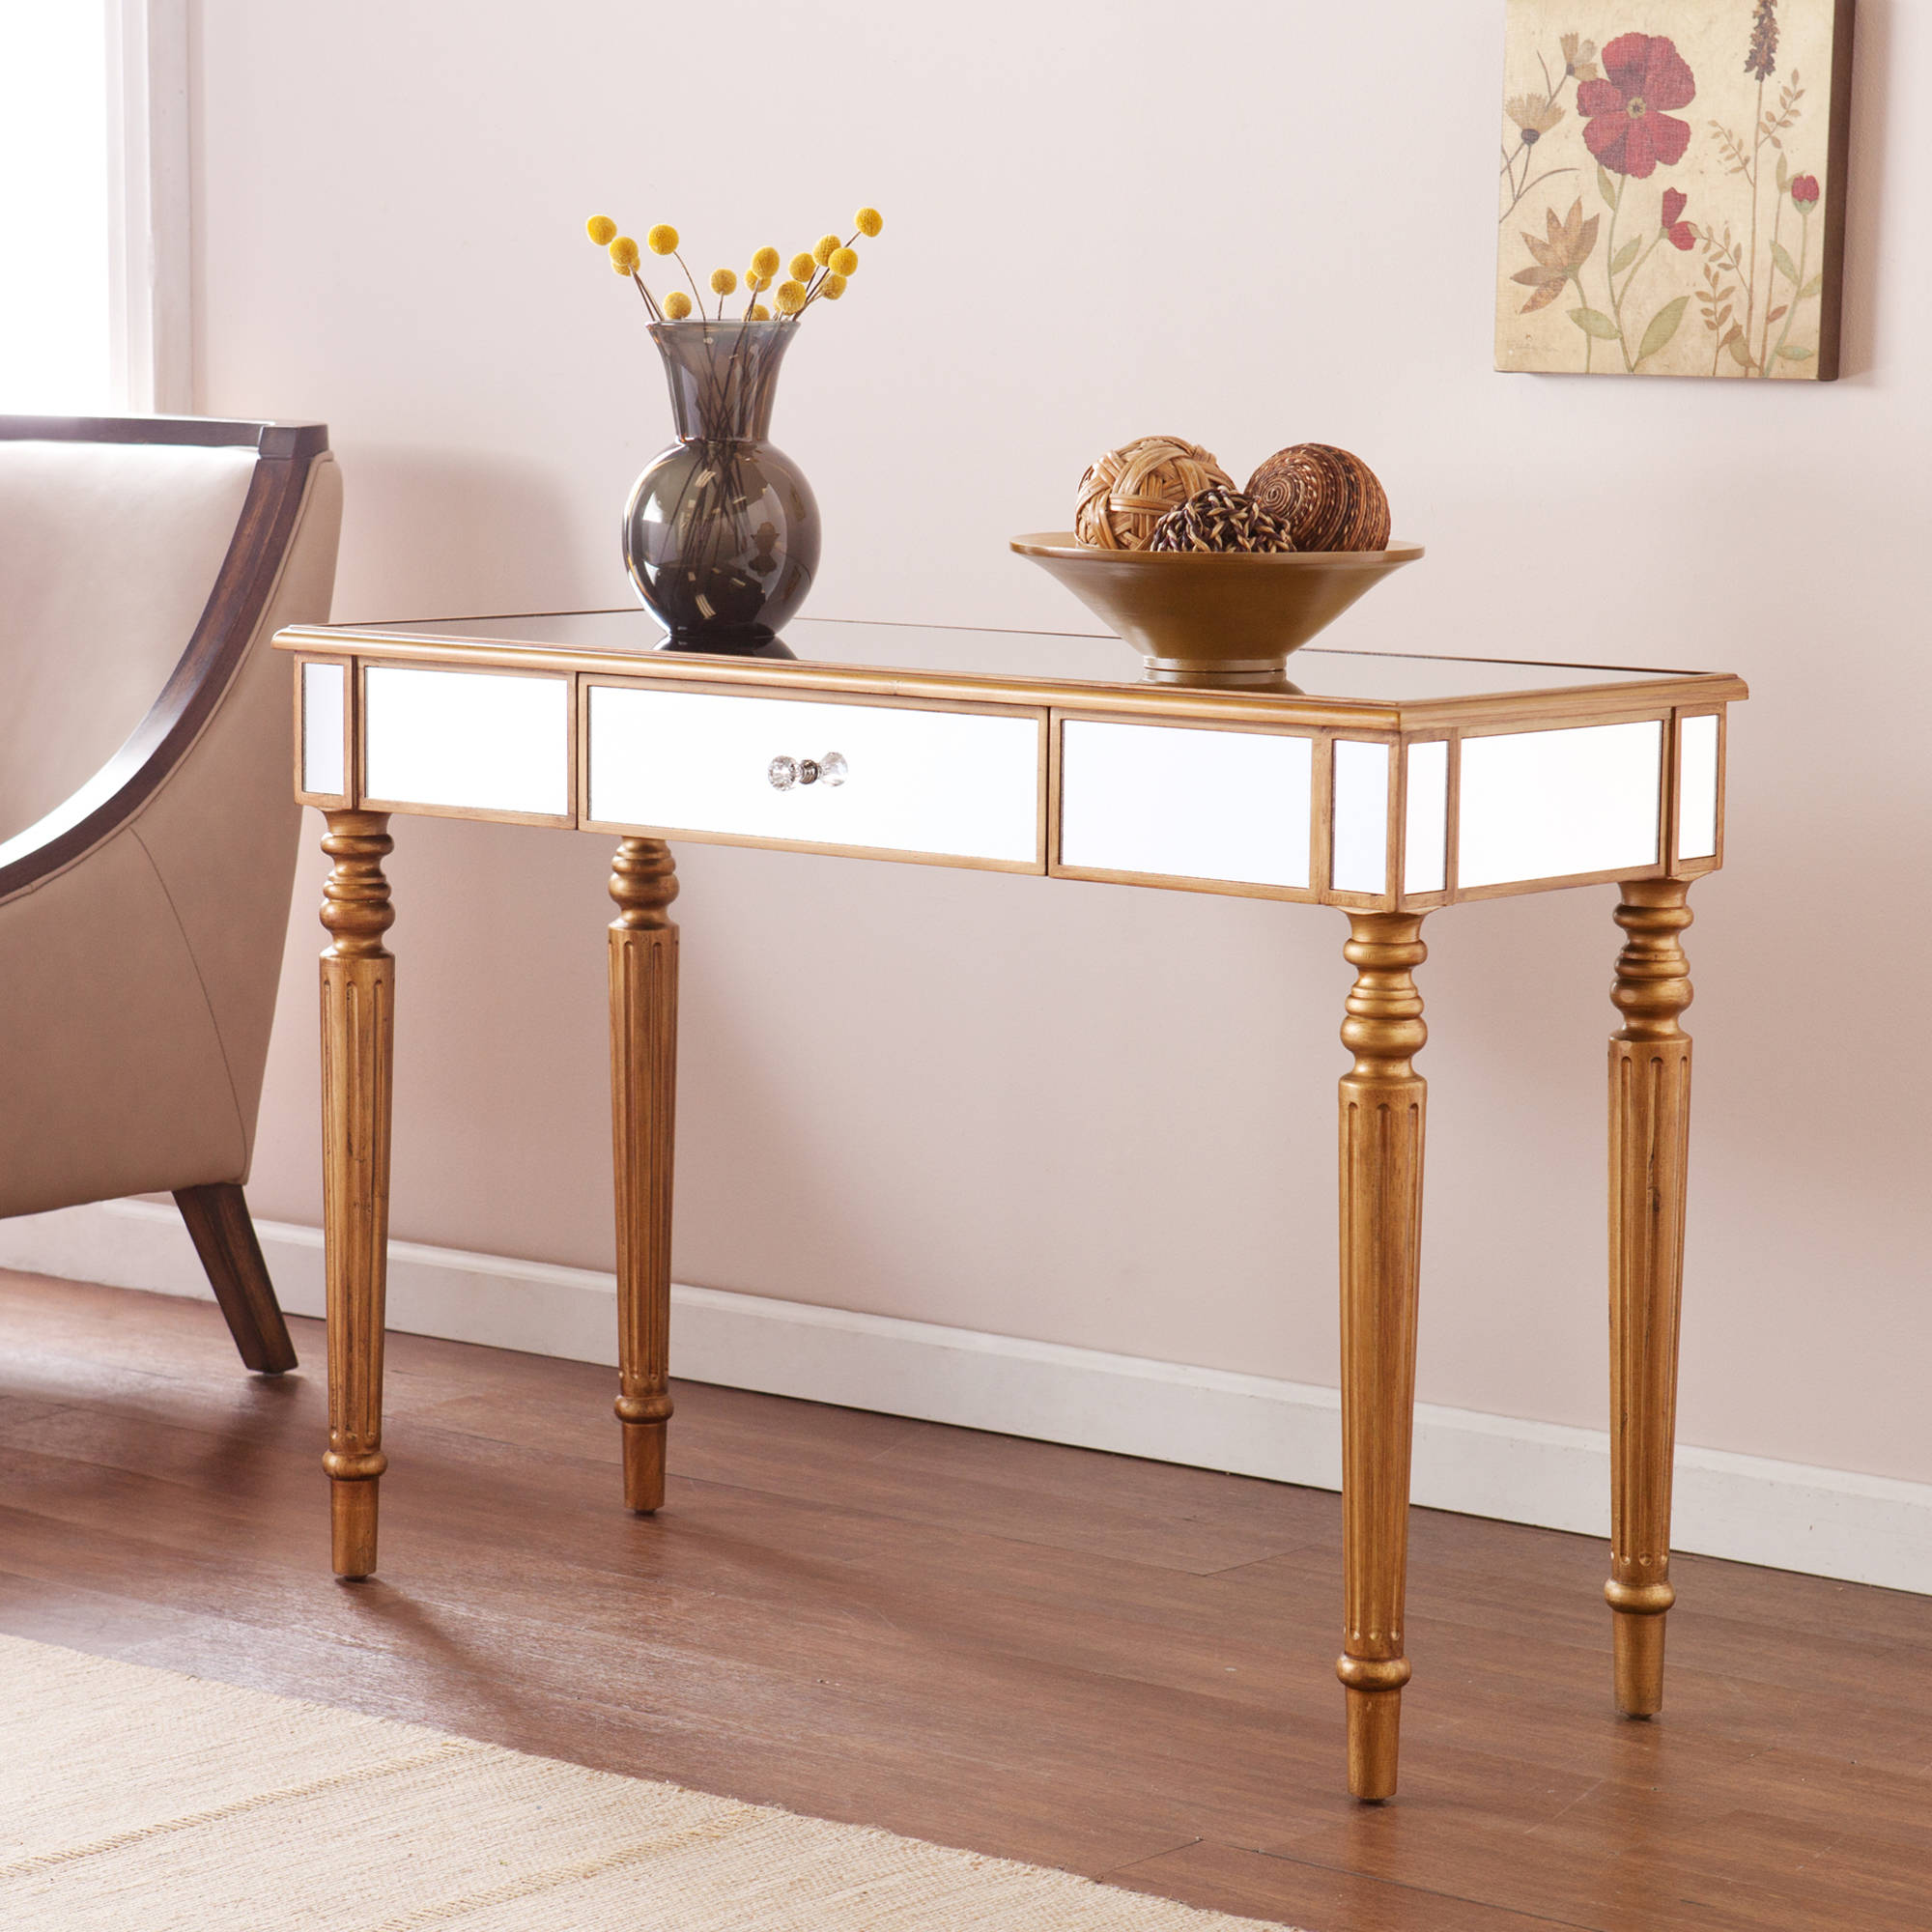 & Lorraine Mirrored Console Table Champagne Gold - Walmart.com